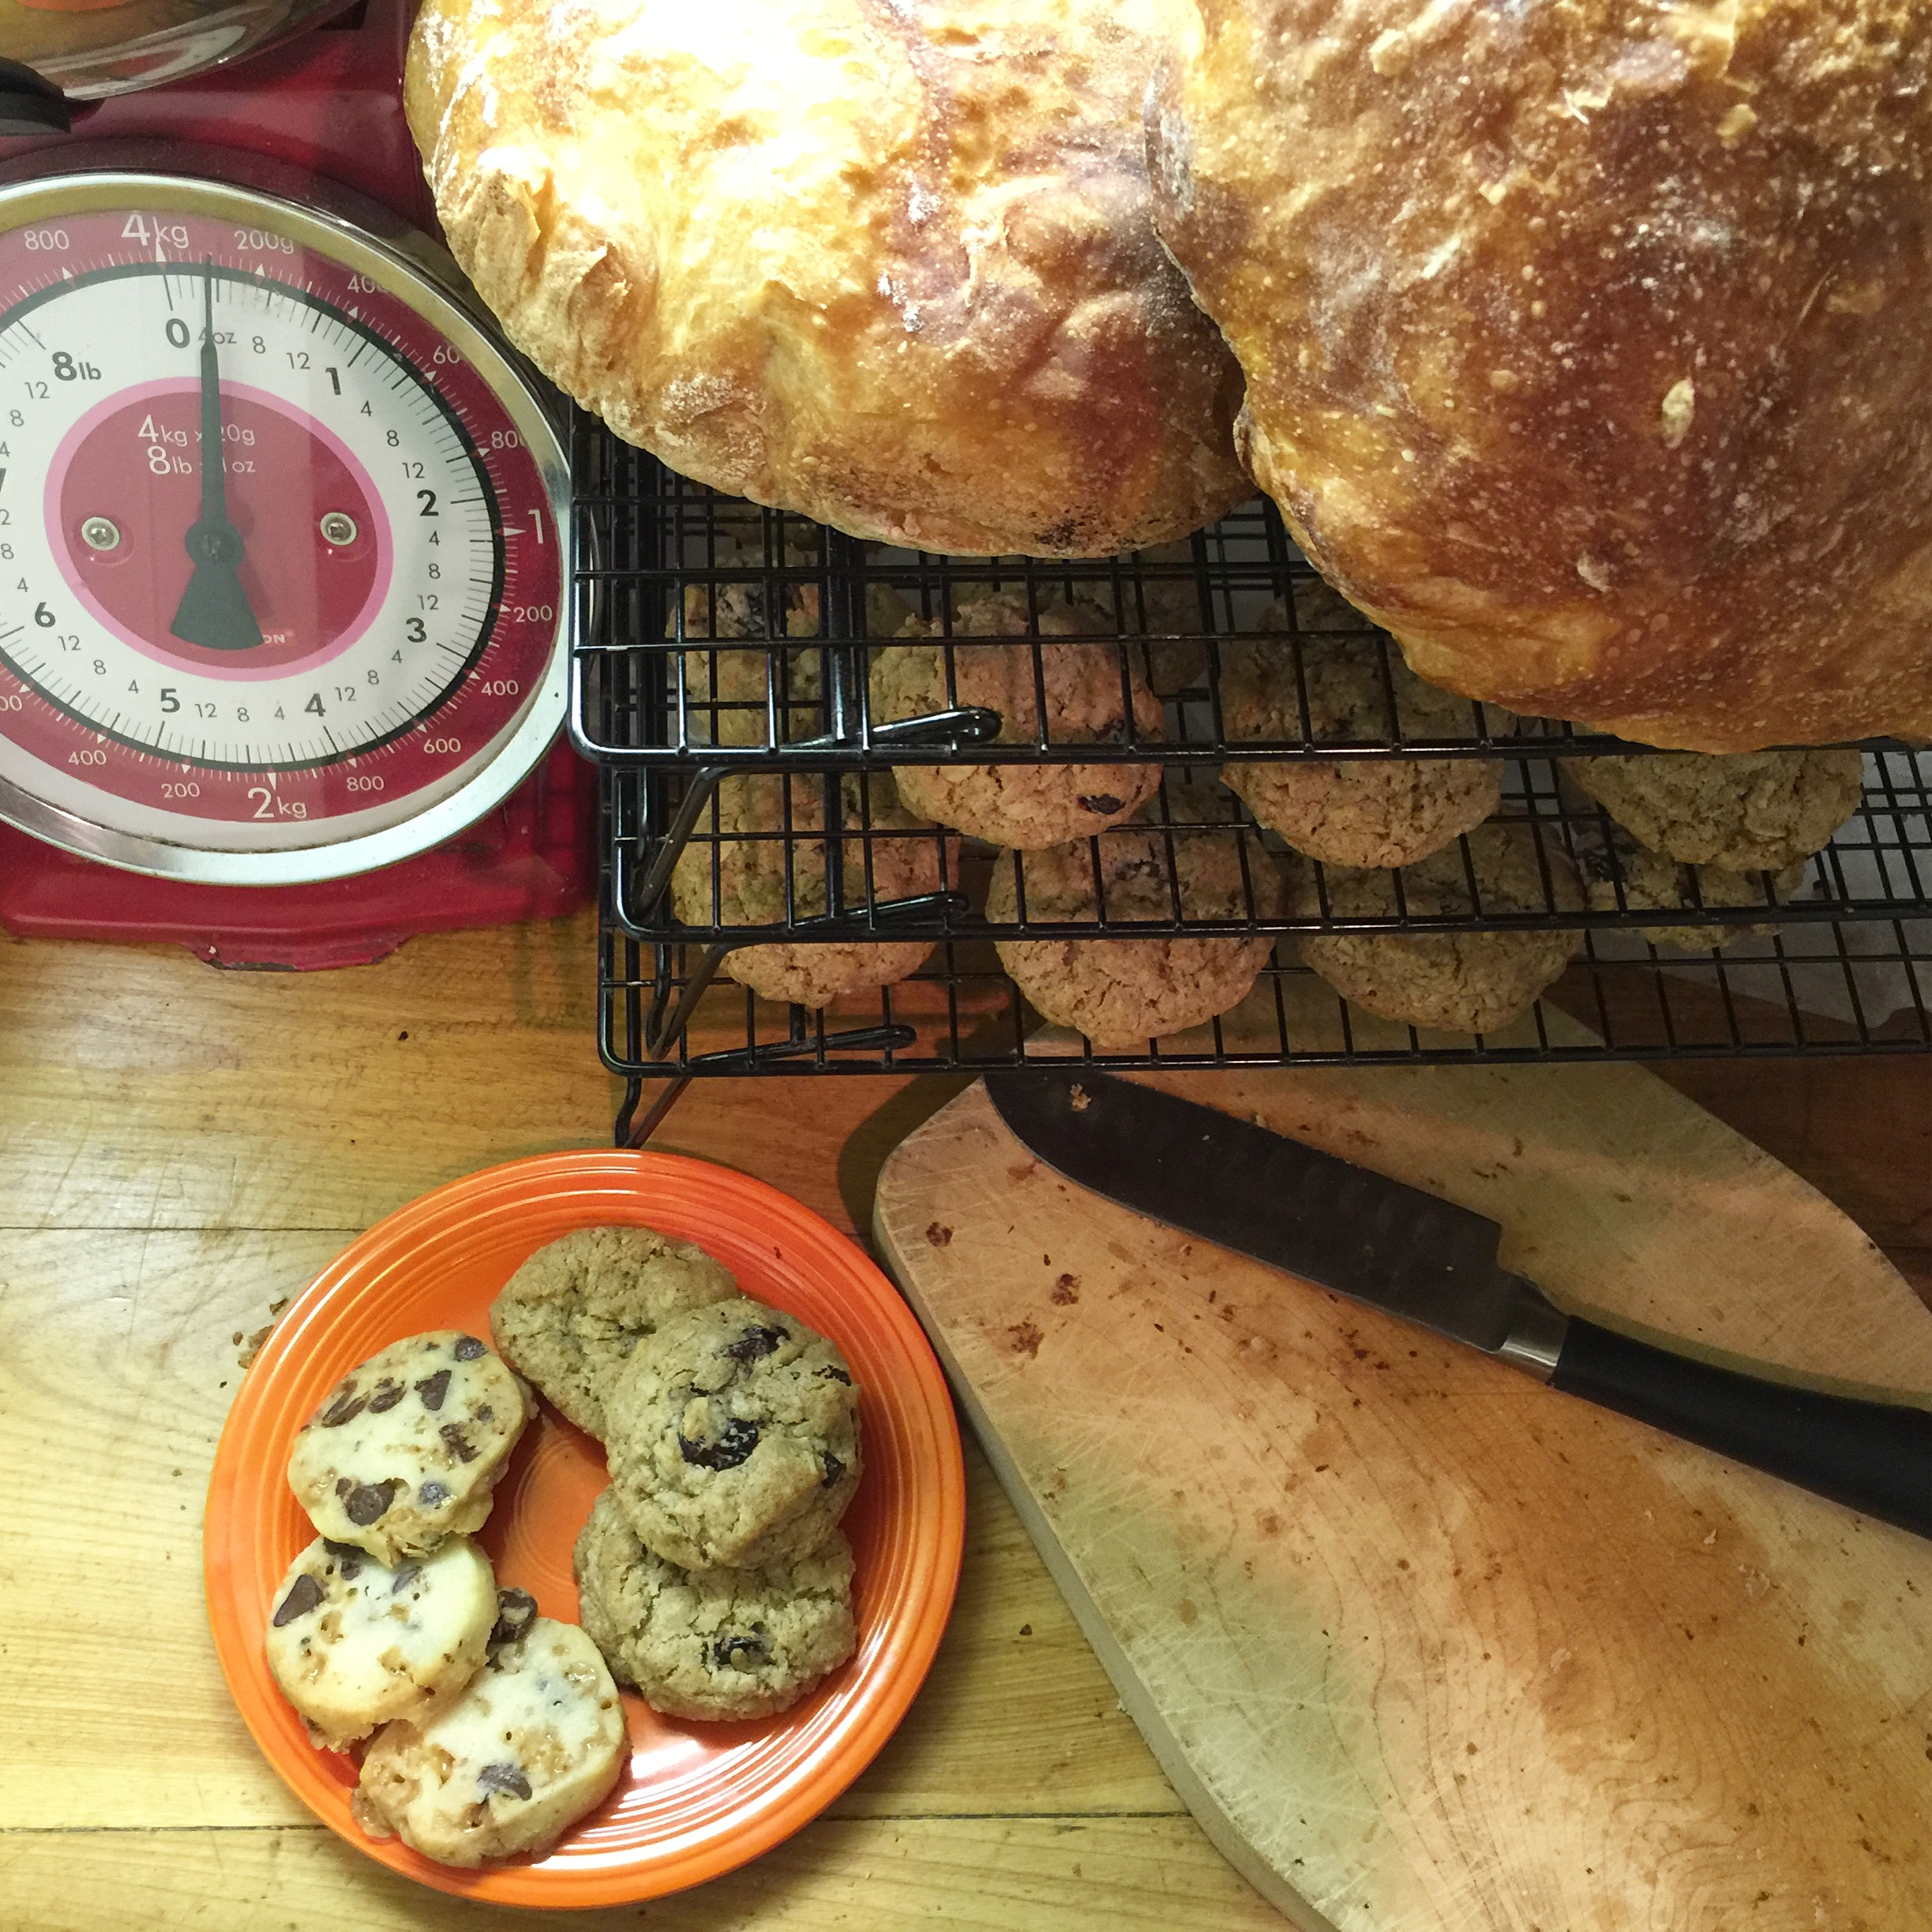 Homemade Breads & Cookies